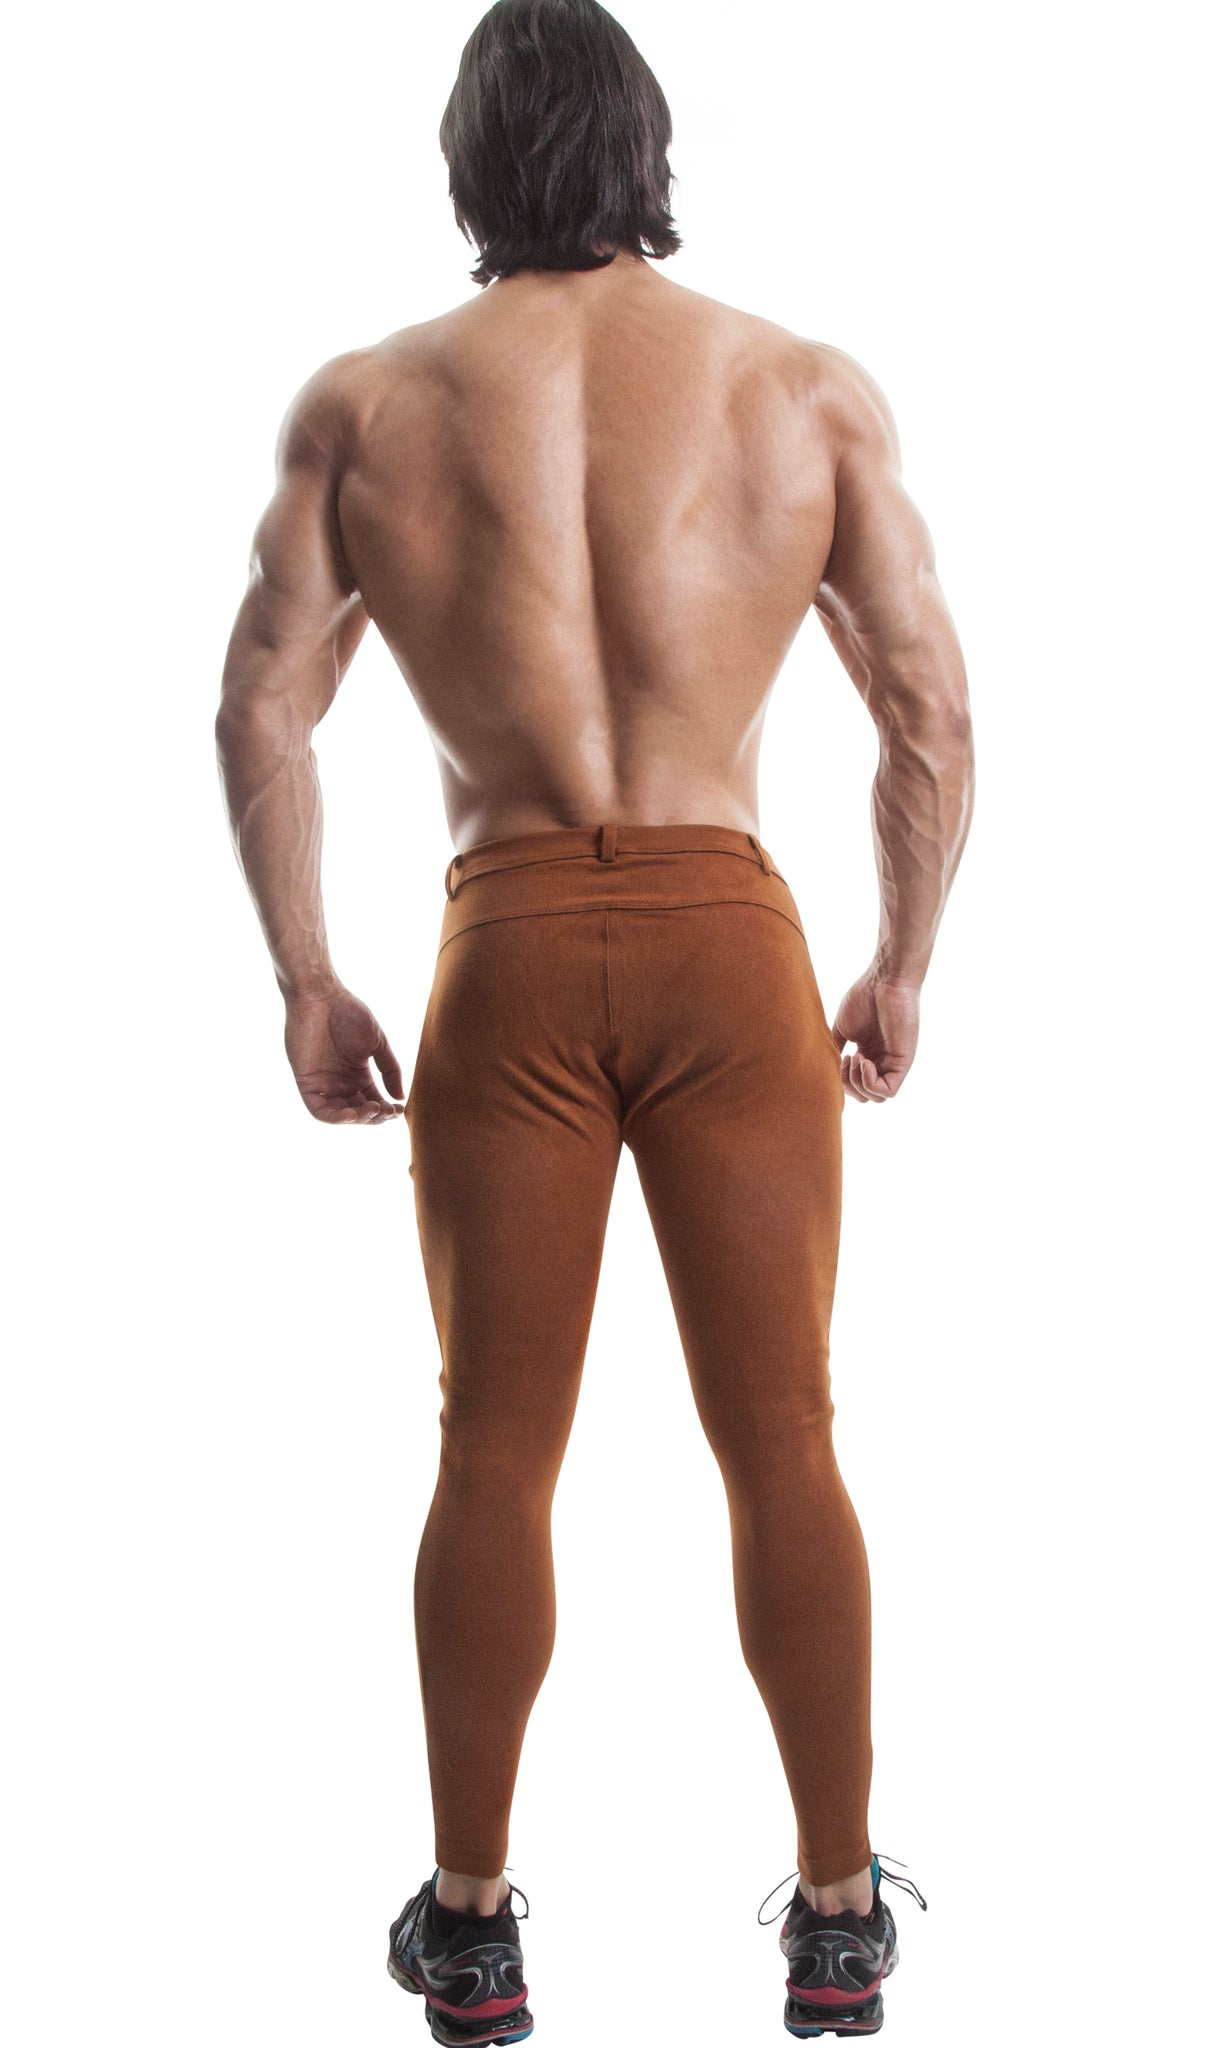 Long Workout Pants (Brown)-(Organic Cotton/Elastin) - DEMIG